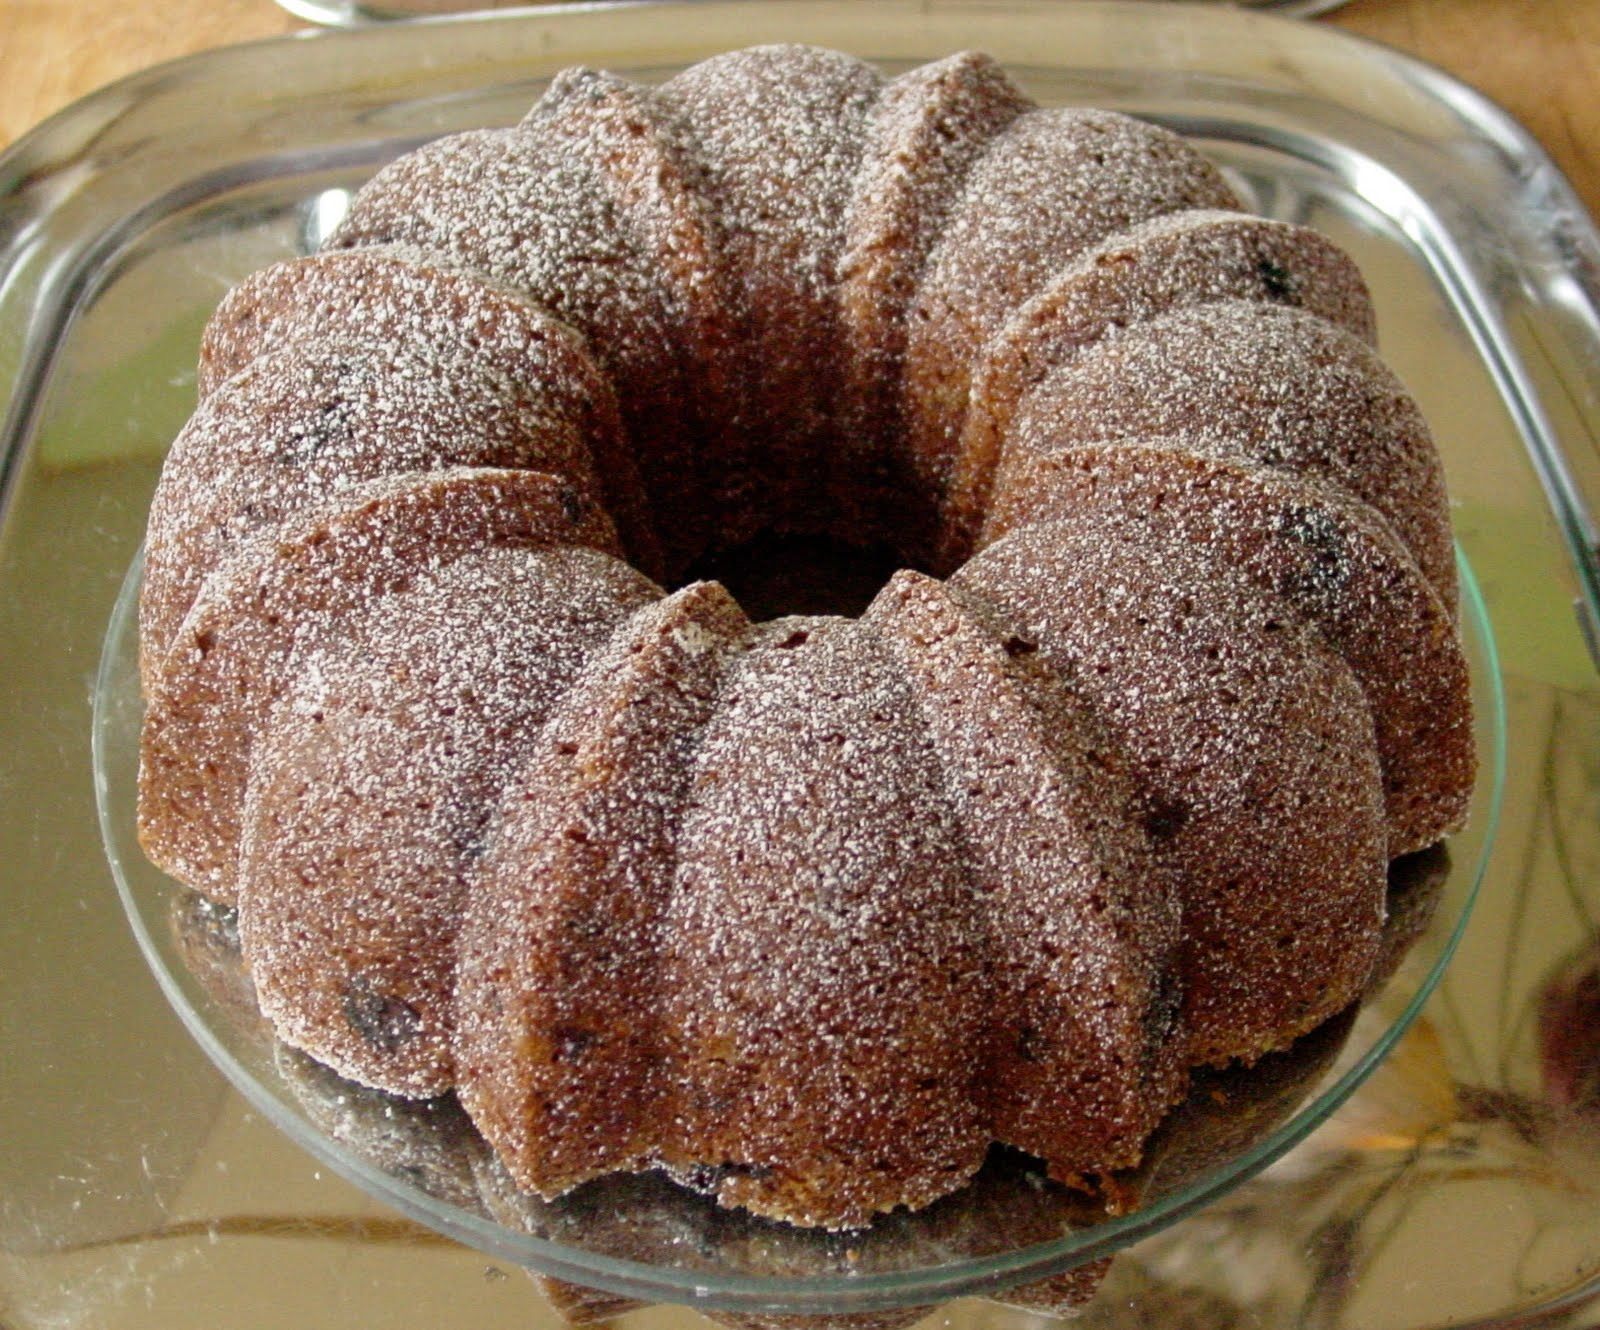 Bungalow Barbara Twd All In One Holiday Bundt Cake